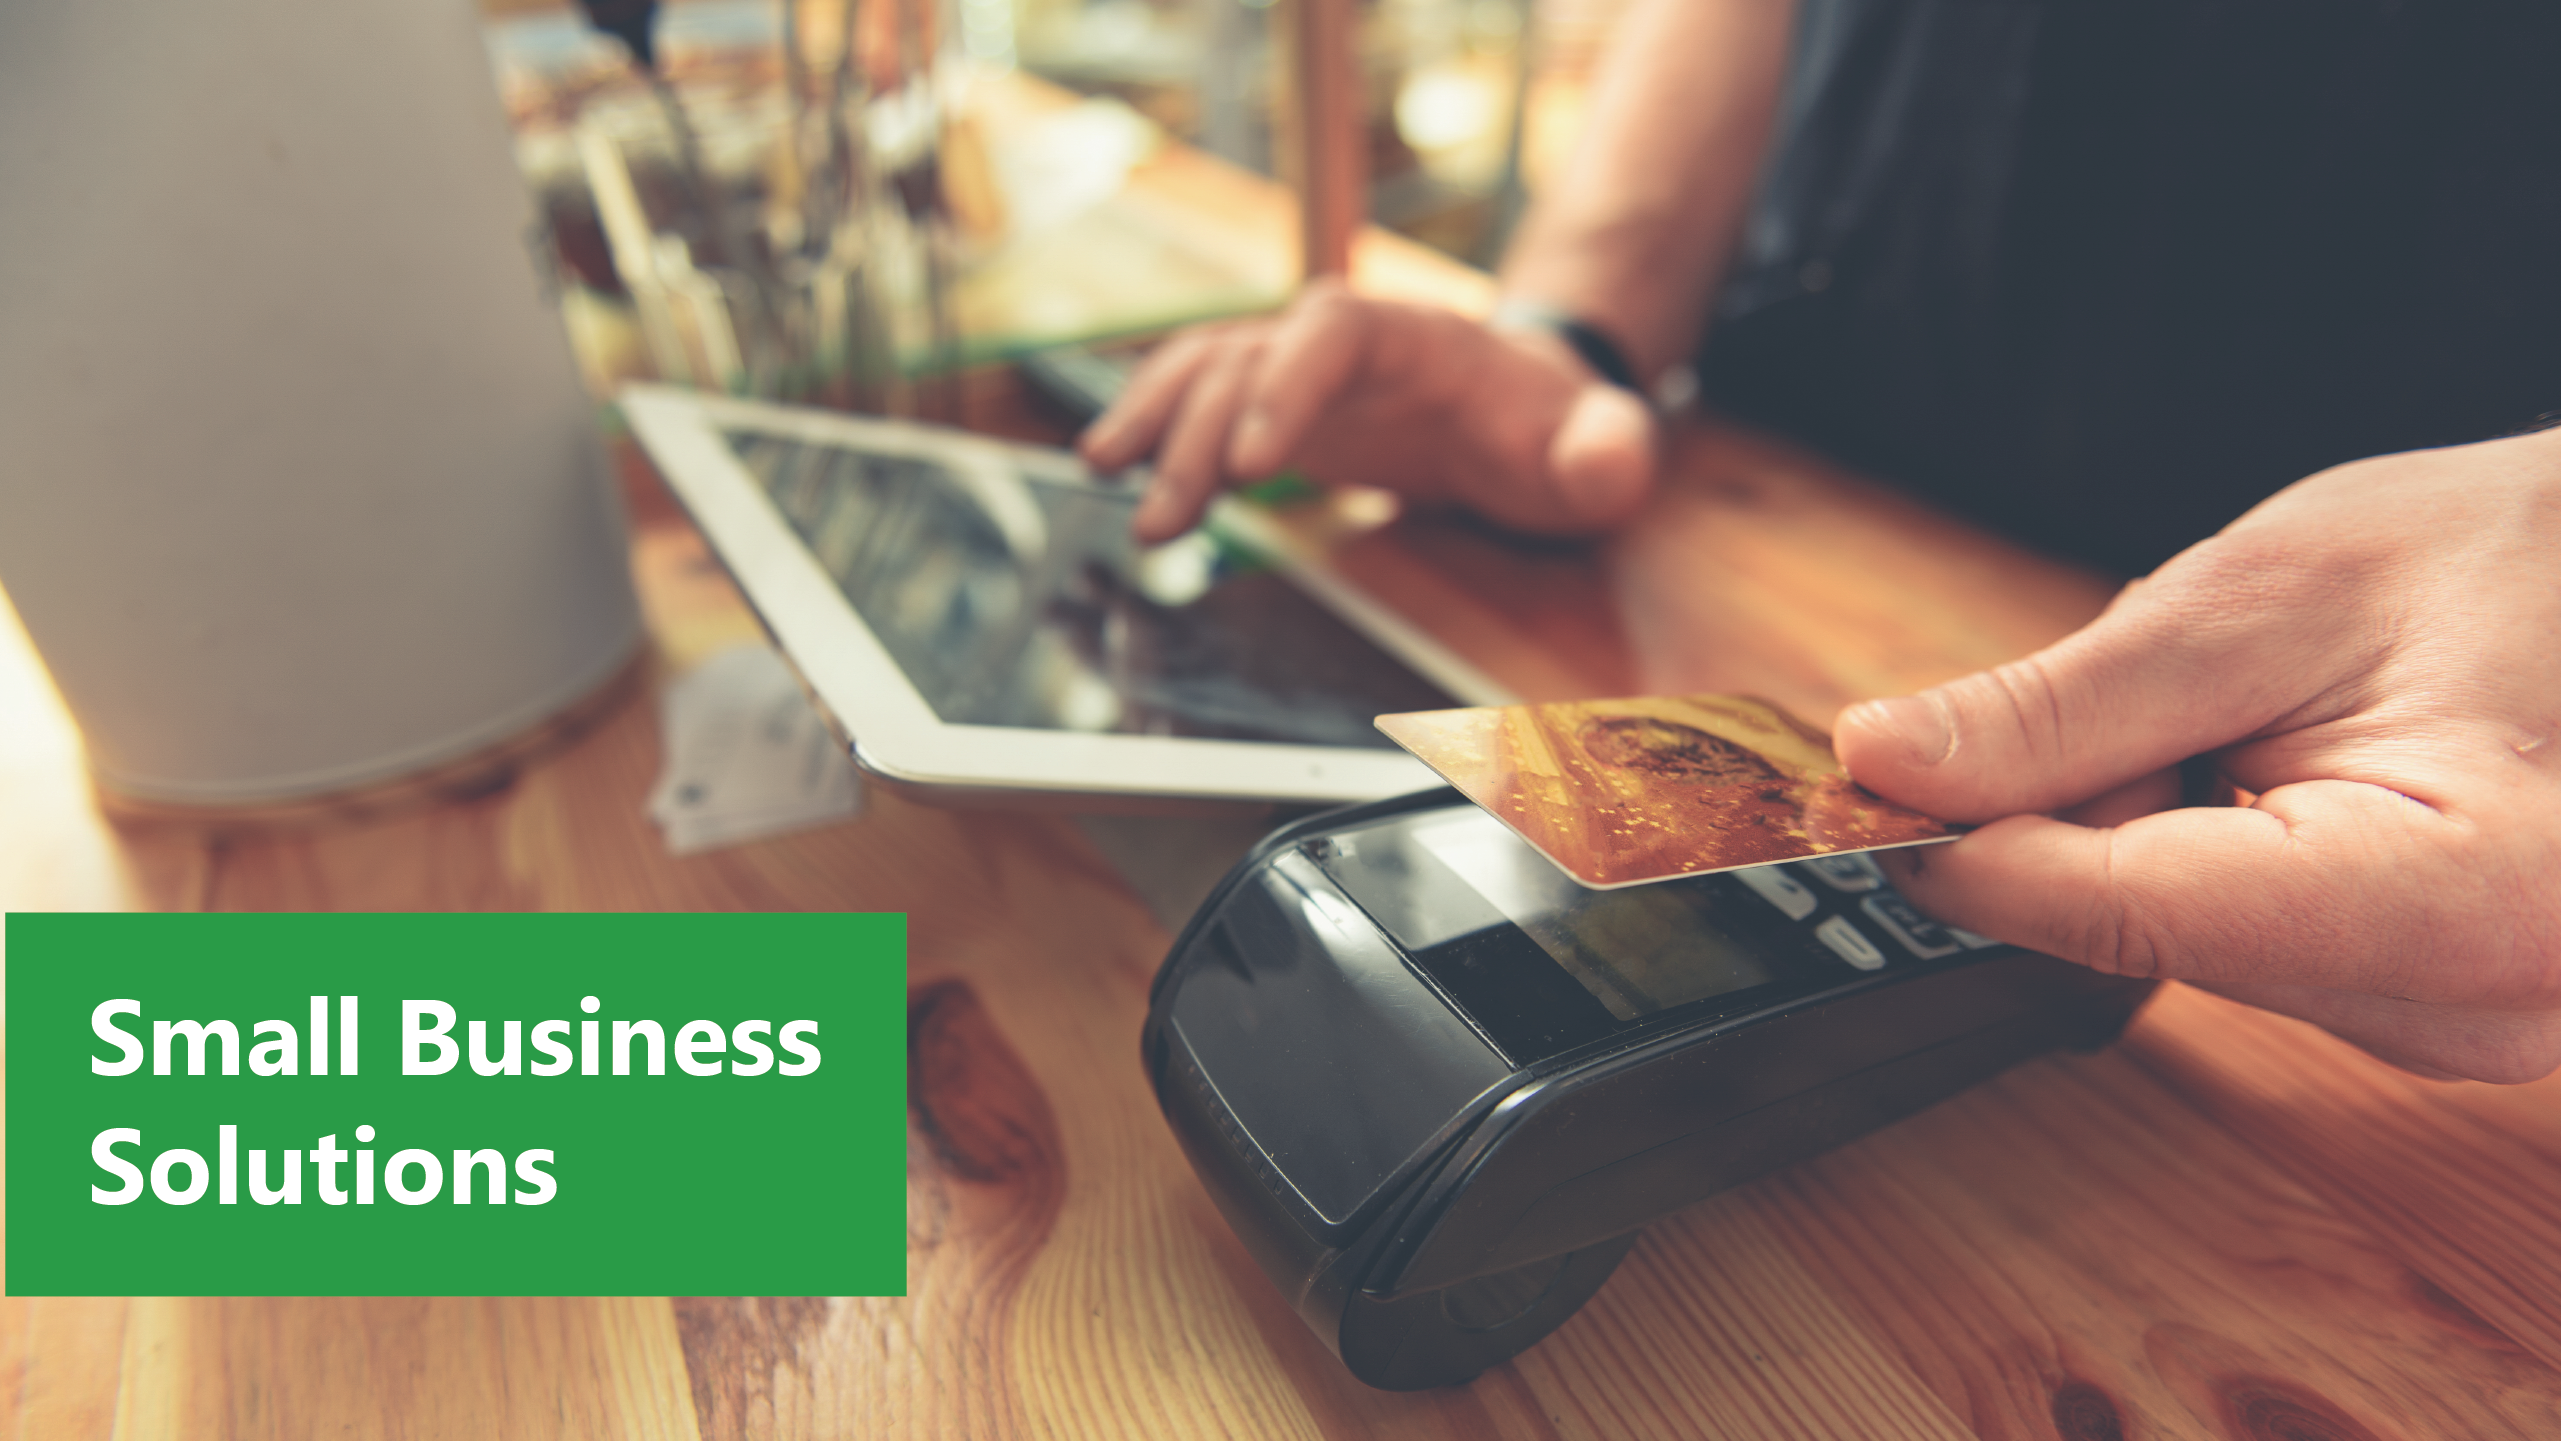 Credit Card being used in card reader at business